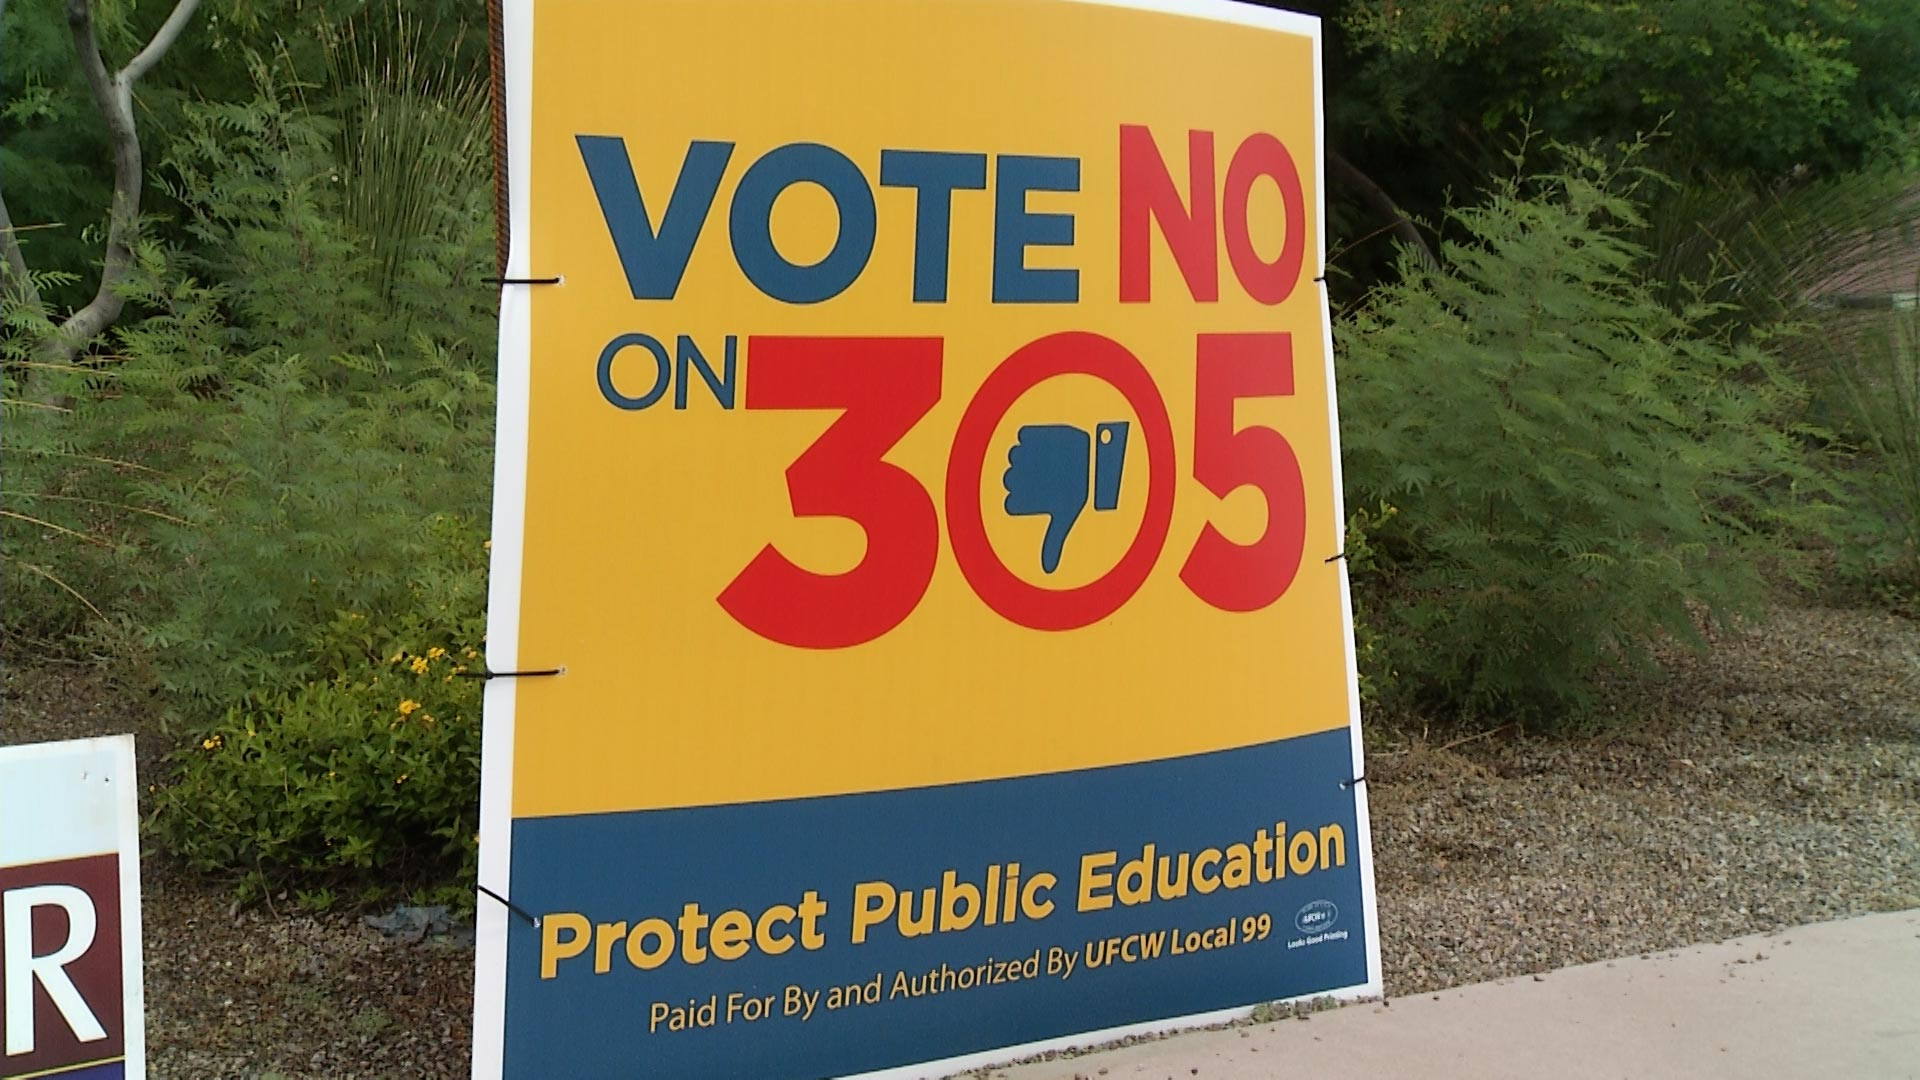 A campaign sign opposing Proposition 305 in Tucson on October 3, 2018.